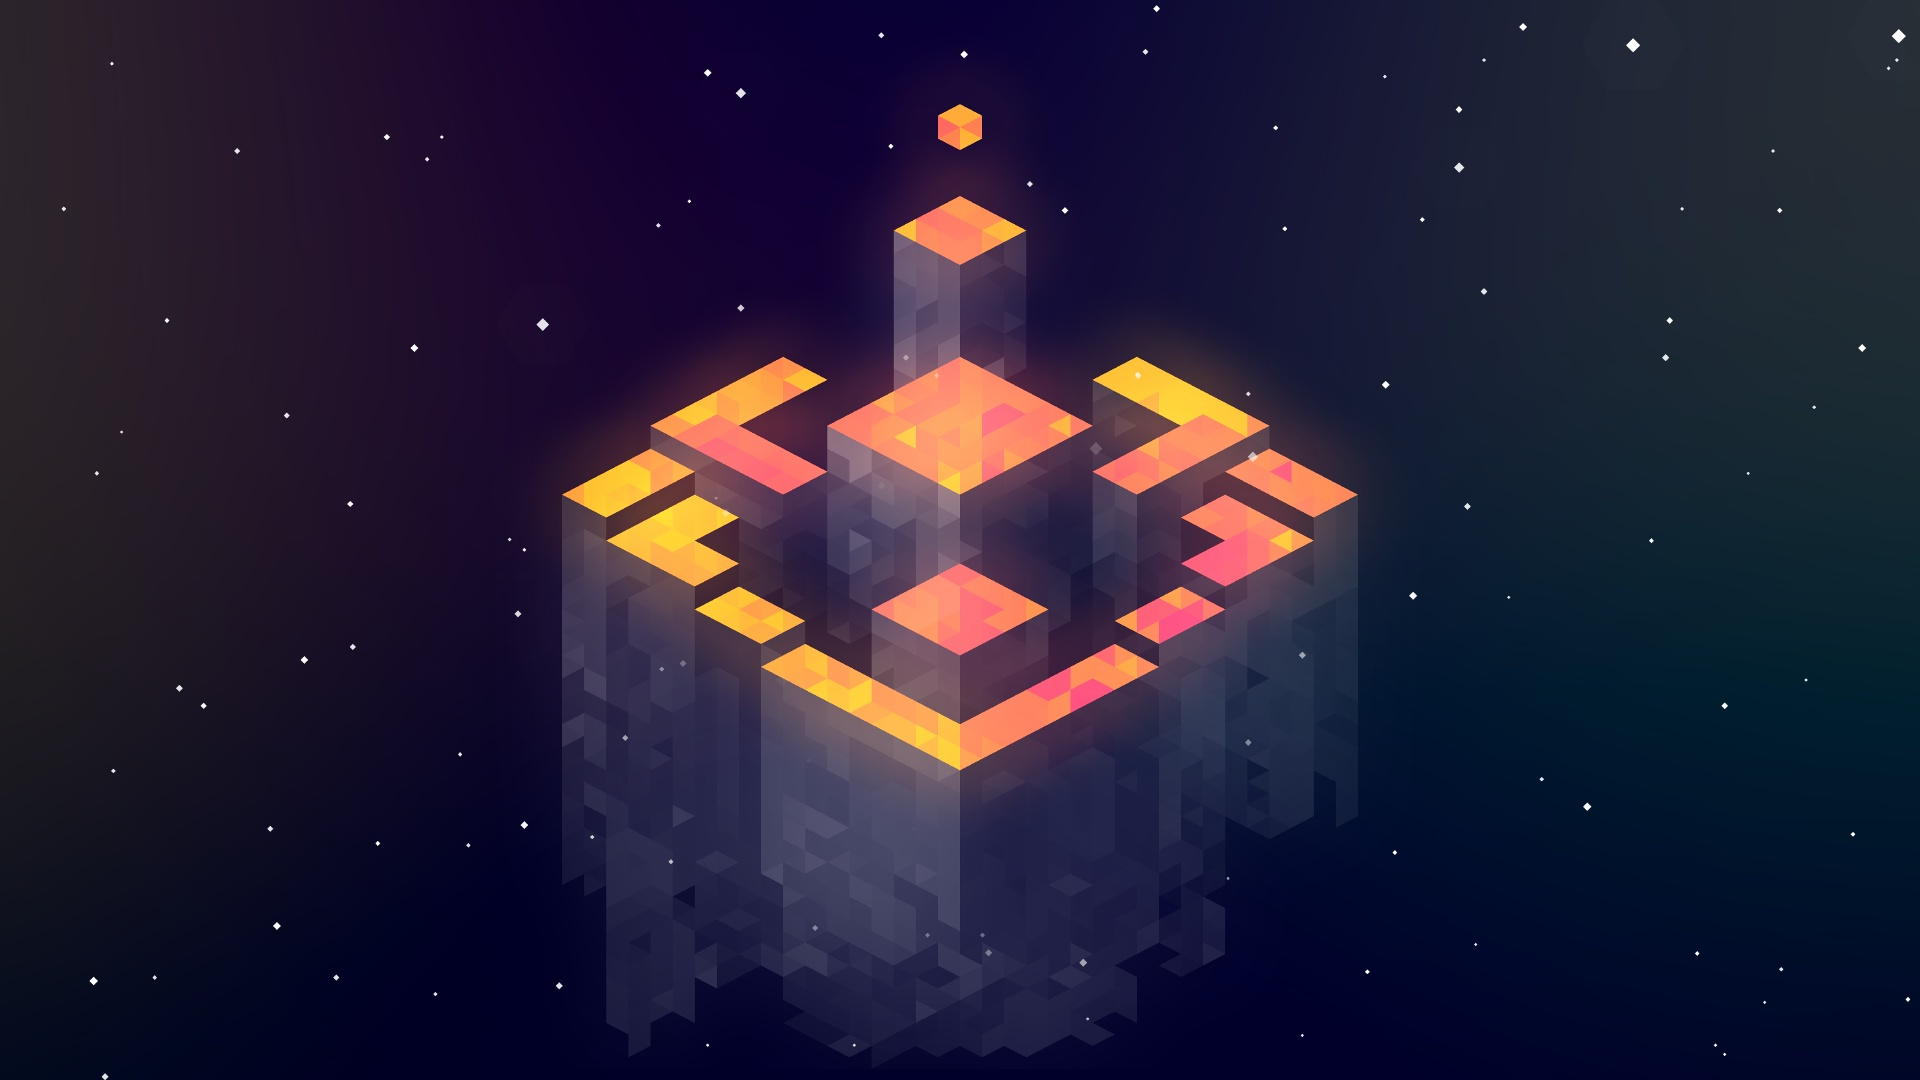 Mario 3d Wallpaper Abstract Fez Isometric Wallpapers Hd Desktop And